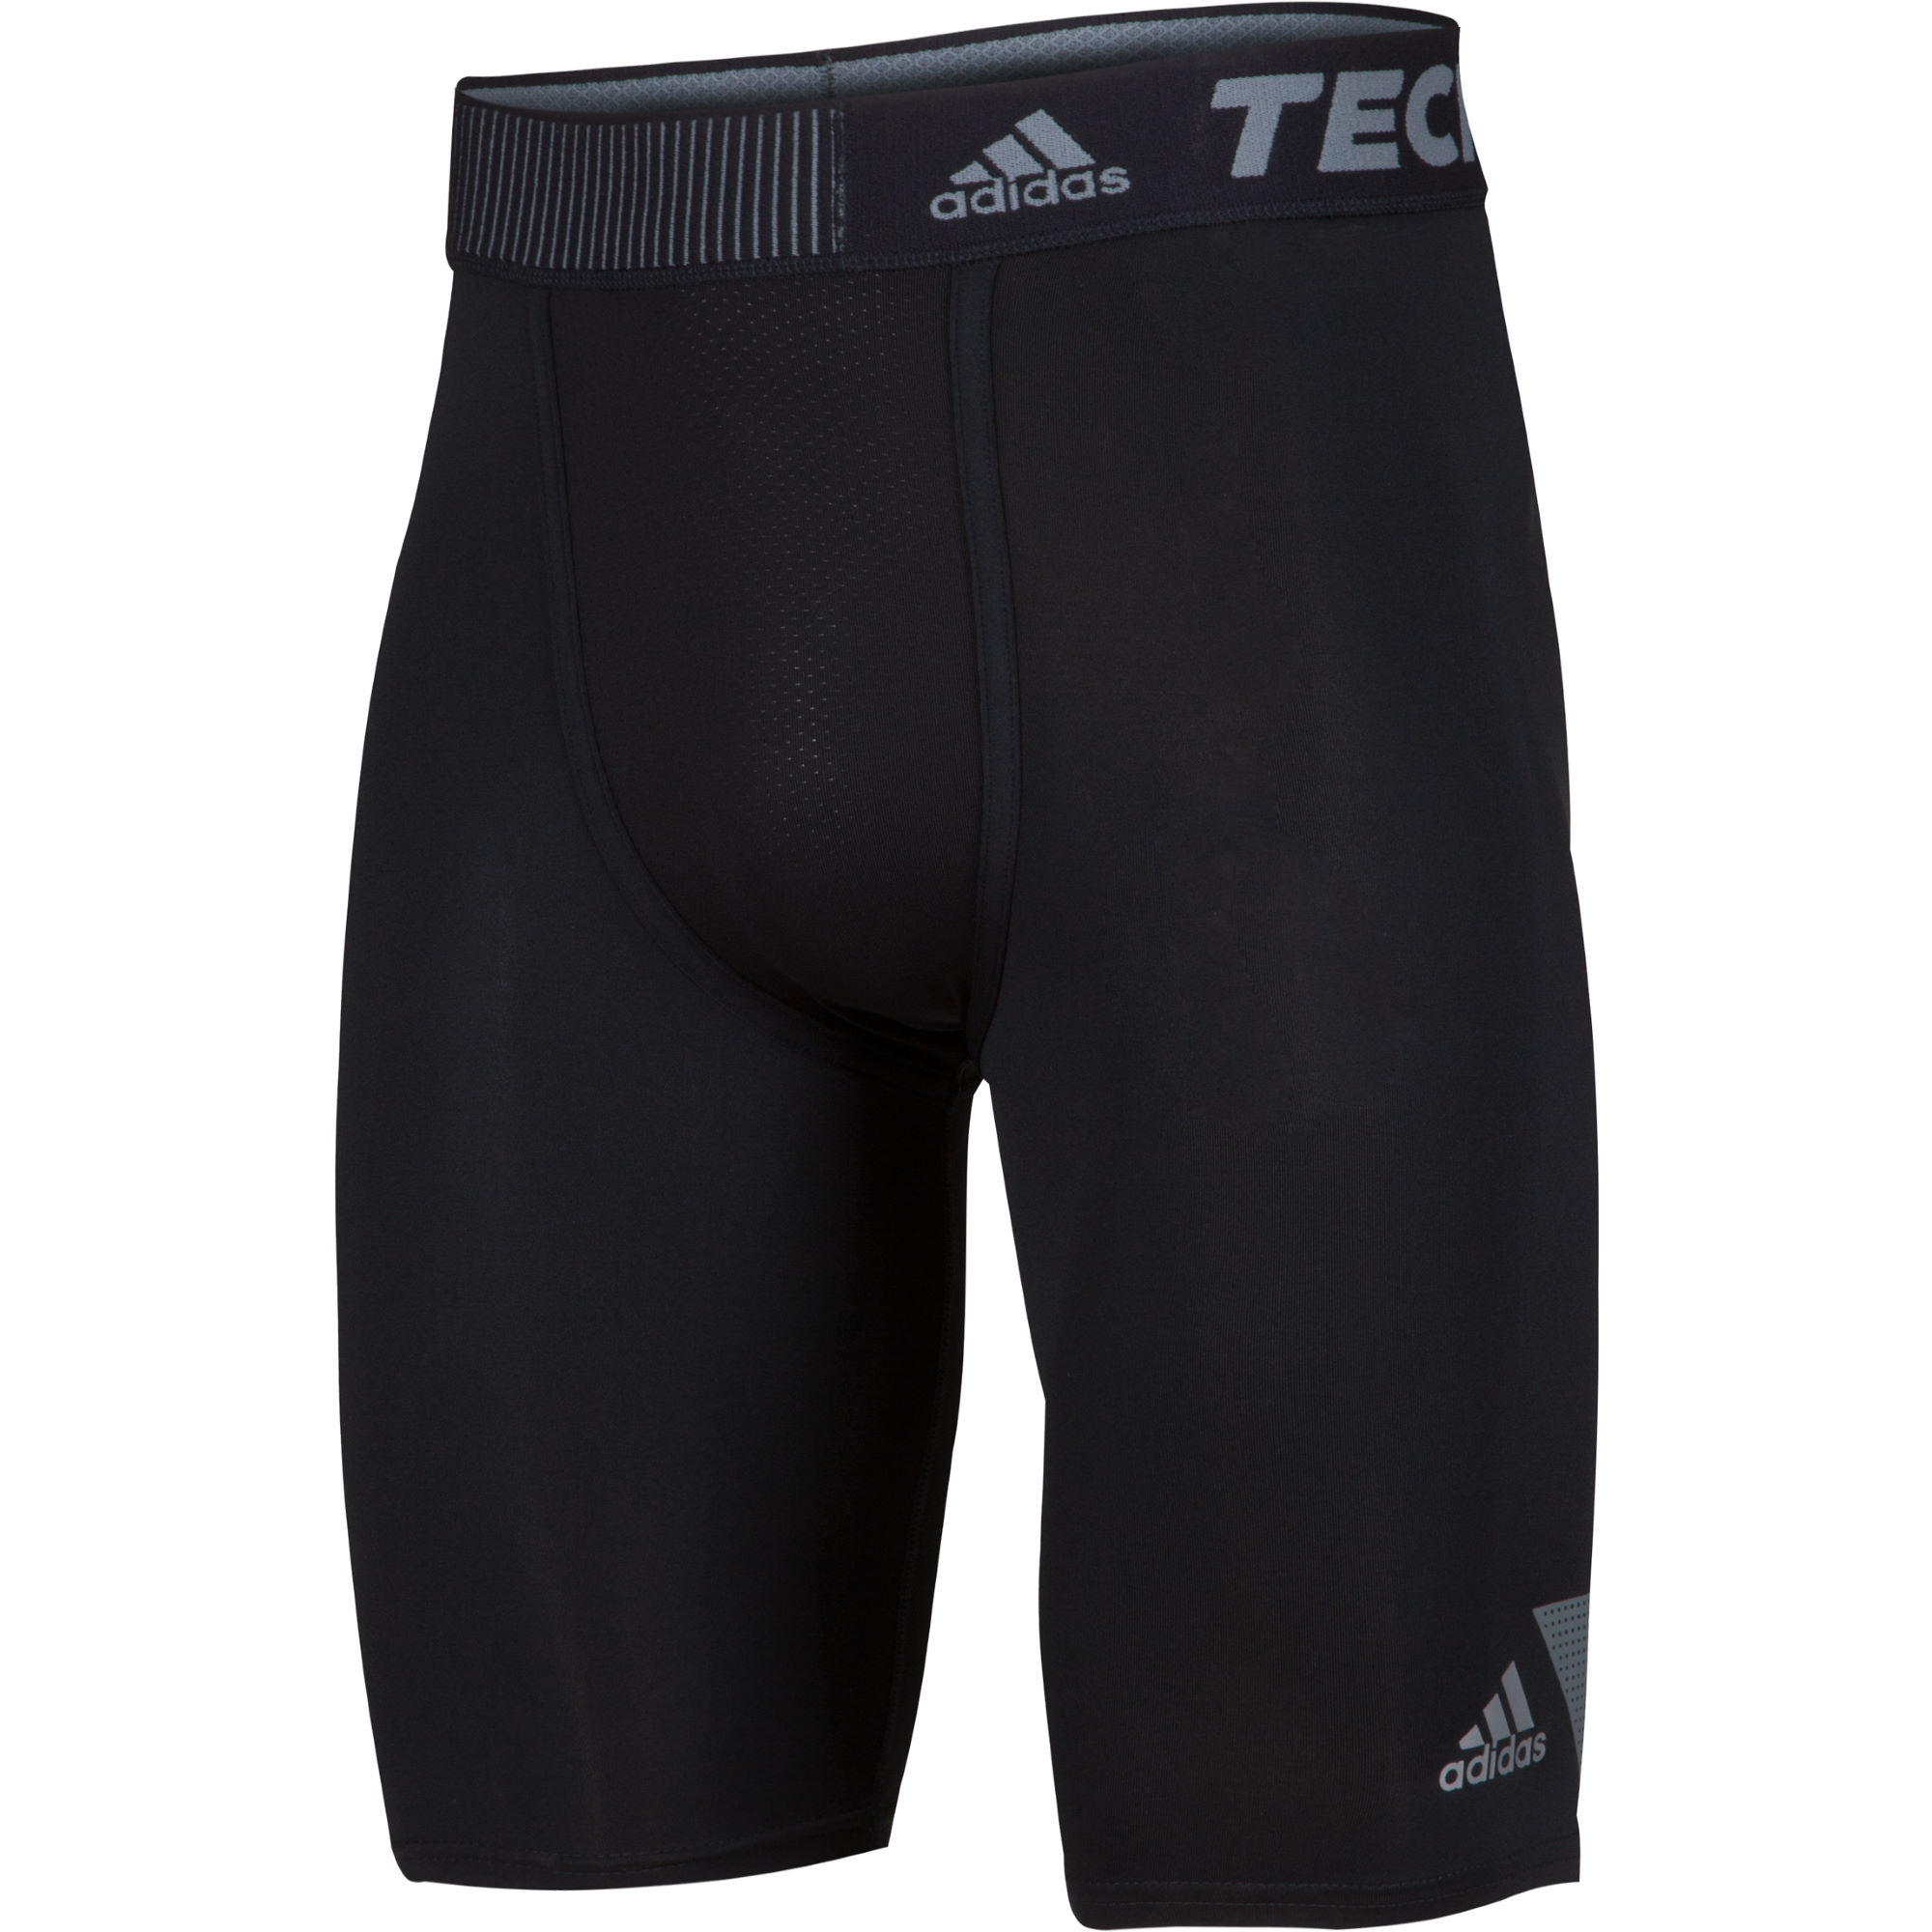 adidas techfit cool short hose h w 15 23 cm. Black Bedroom Furniture Sets. Home Design Ideas